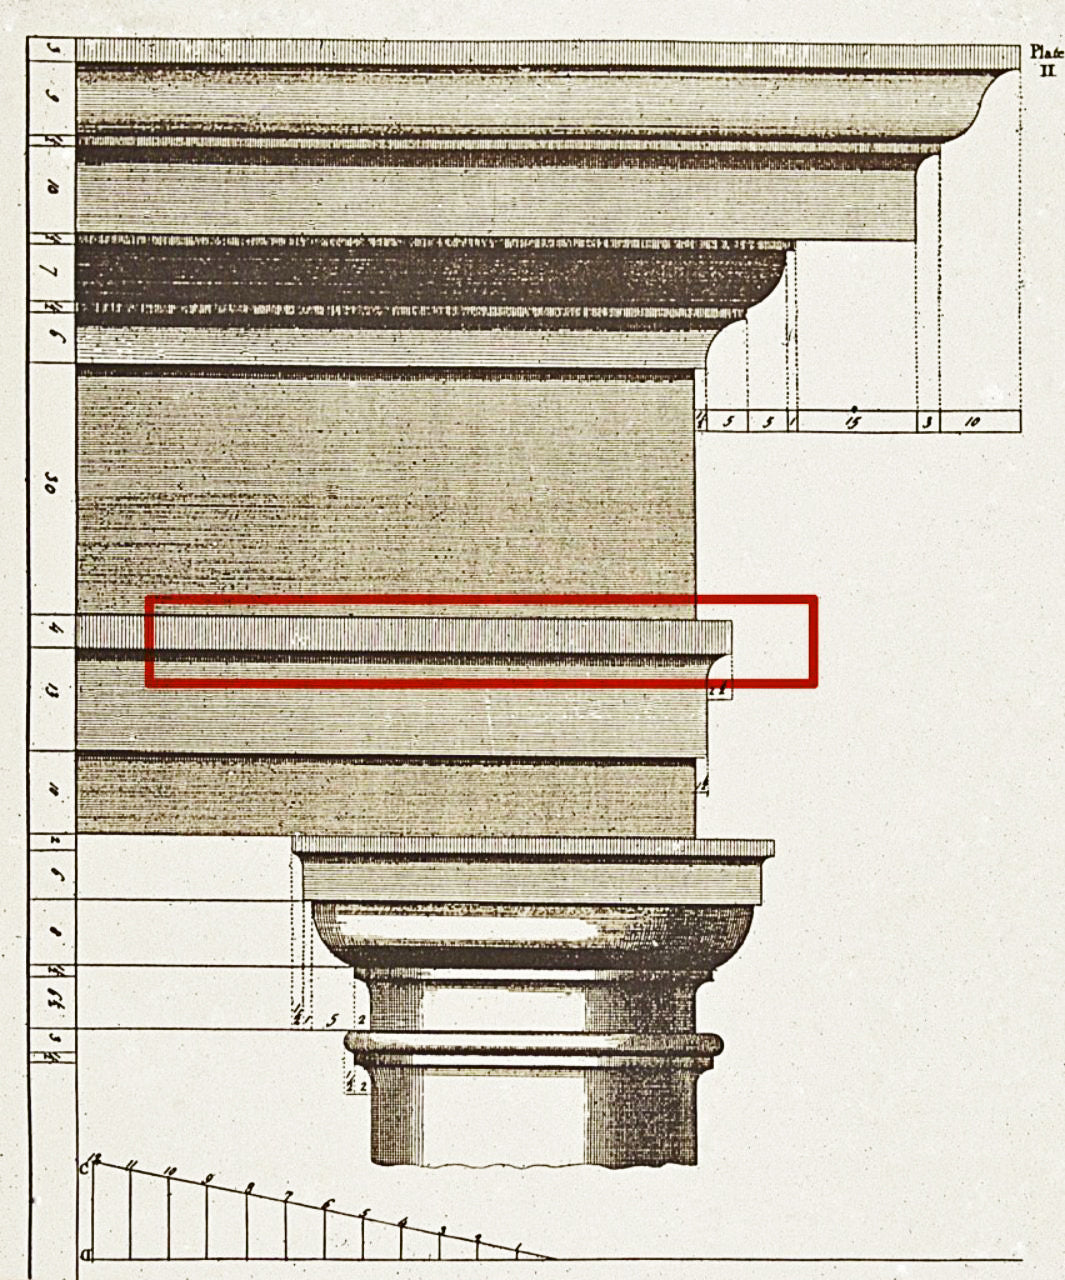 Taenia - Classical Architectural Term - Illustrated Glossary from Brockwell Incorporated